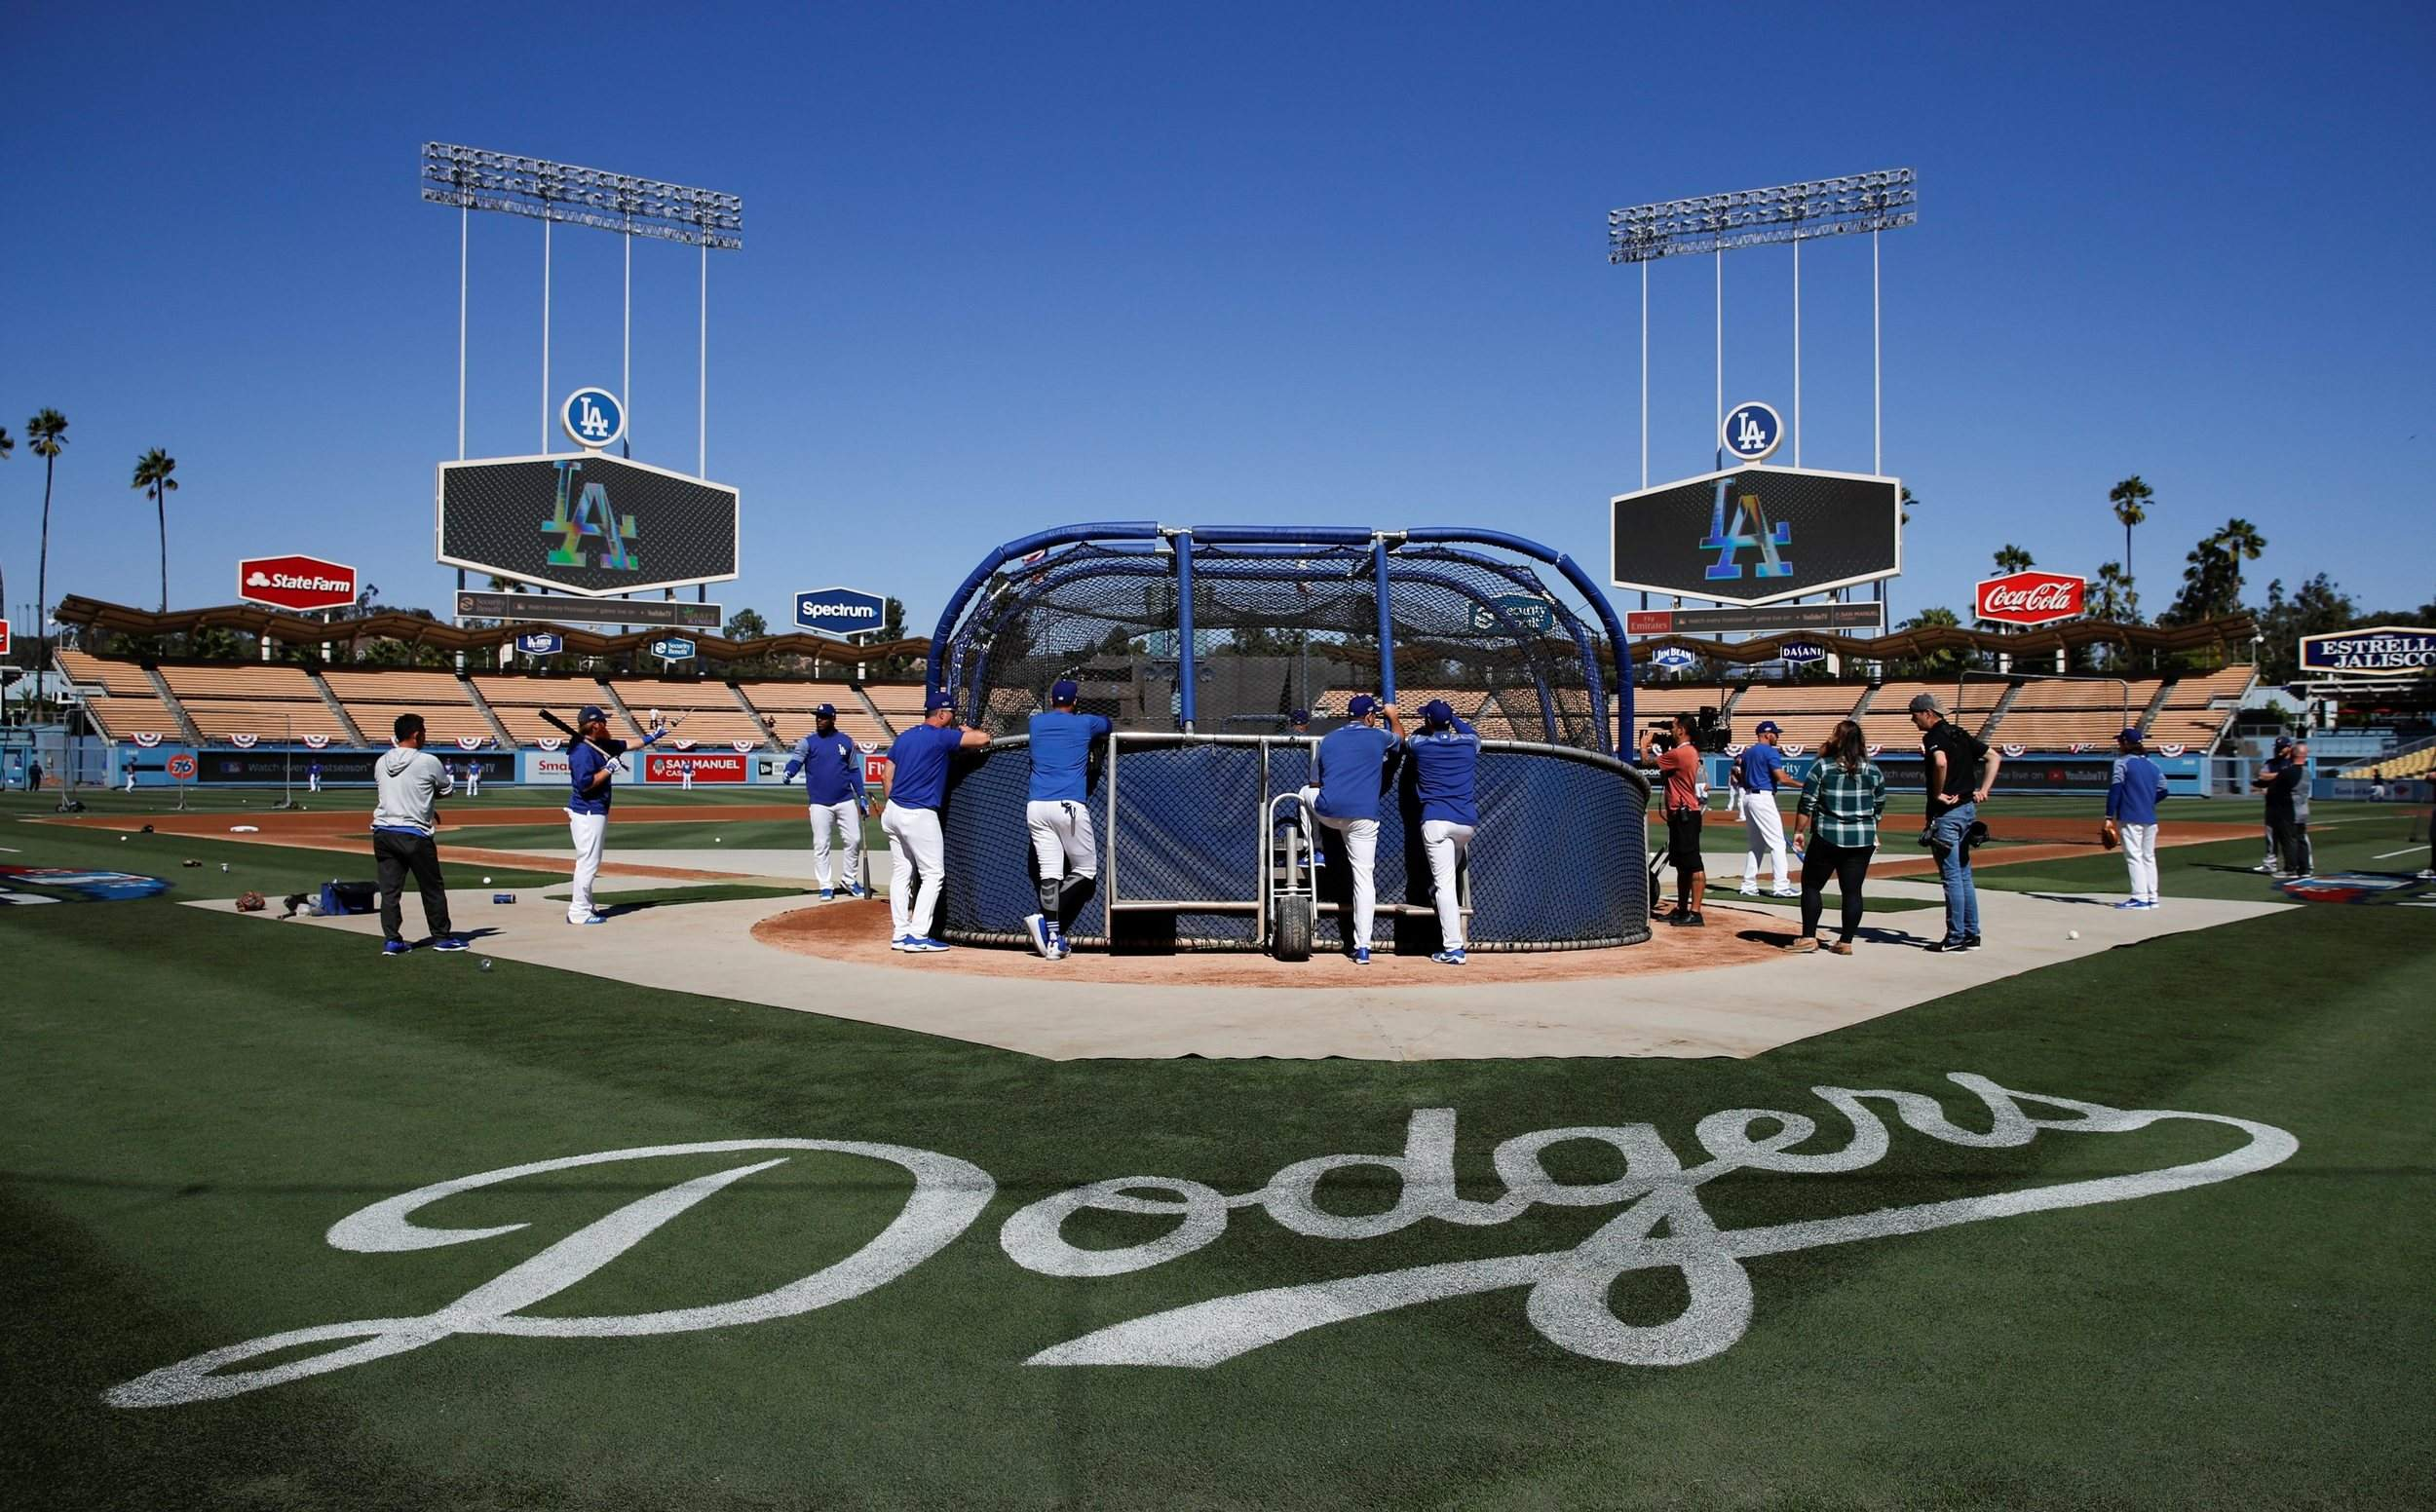 Los Angeles Dodgers take batting practice before Game 3 of the National League Championship Series against the Milwaukee Brewers on Monday in Los Angeles.